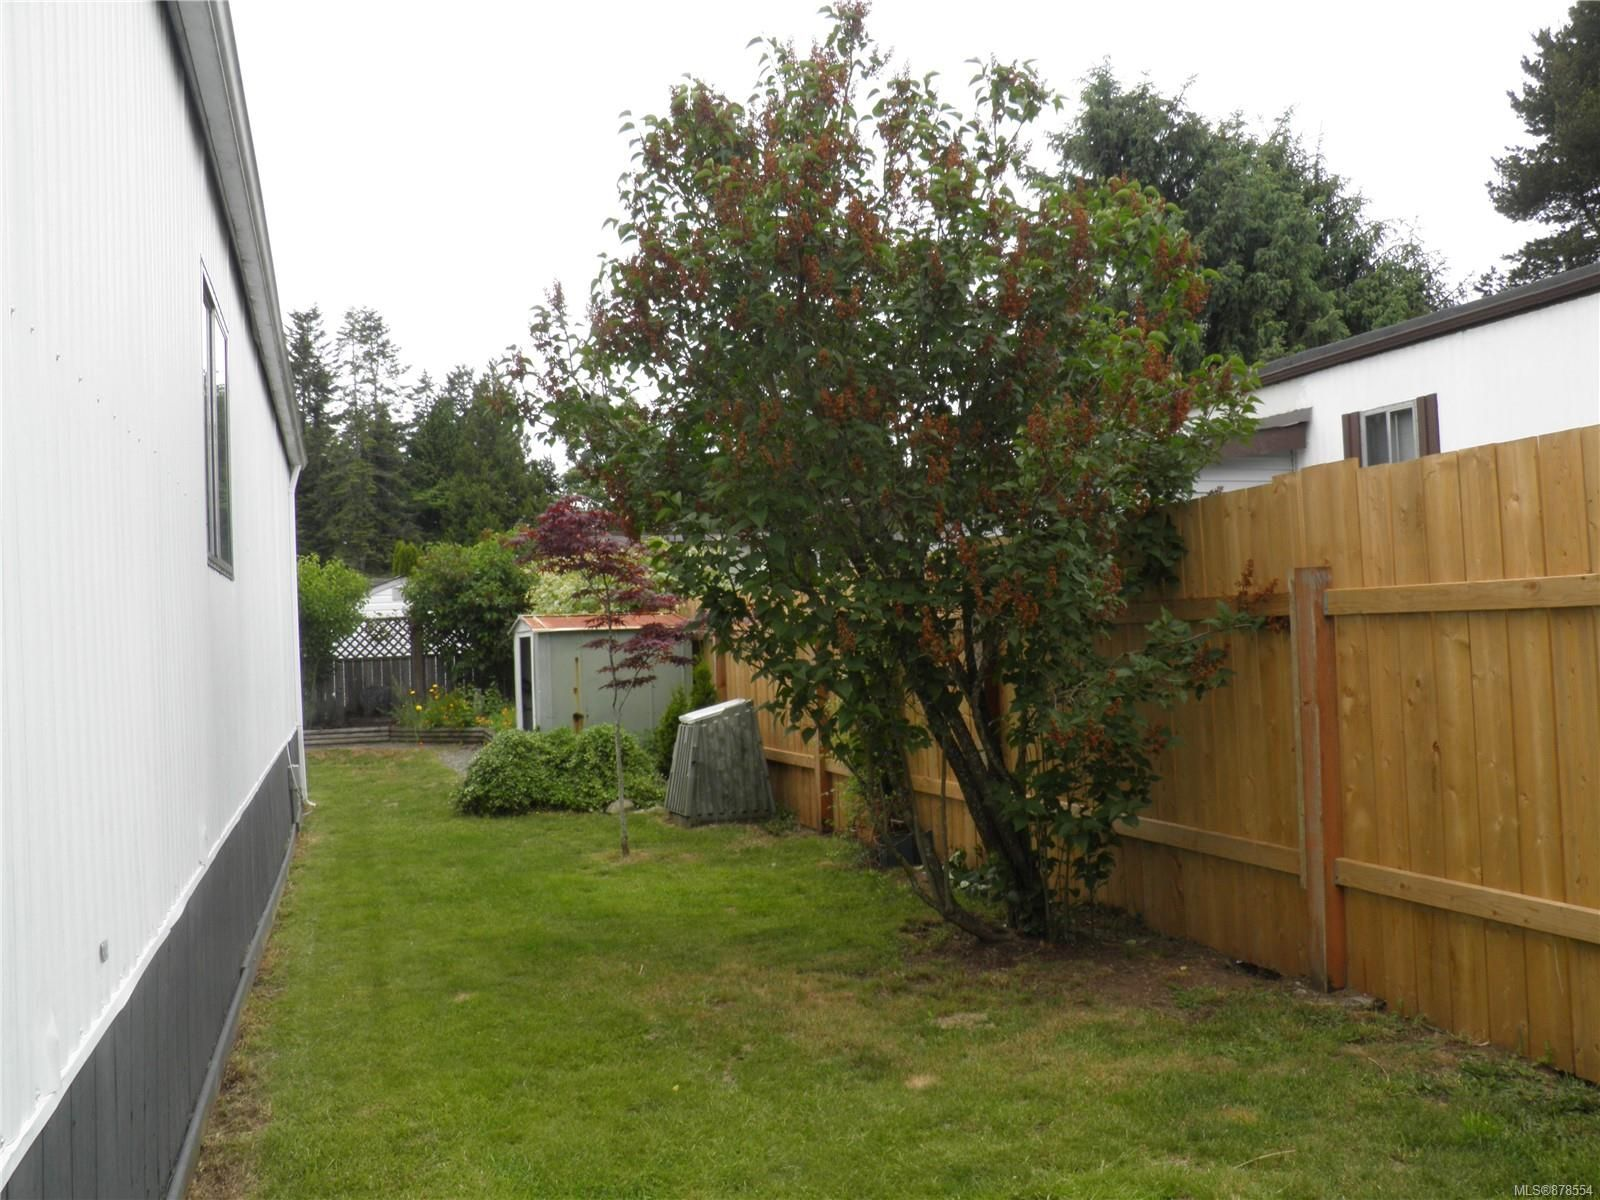 Photo 16: Photos: 56 390 Cowichan Ave in : CV Courtenay East Manufactured Home for sale (Comox Valley)  : MLS®# 878554